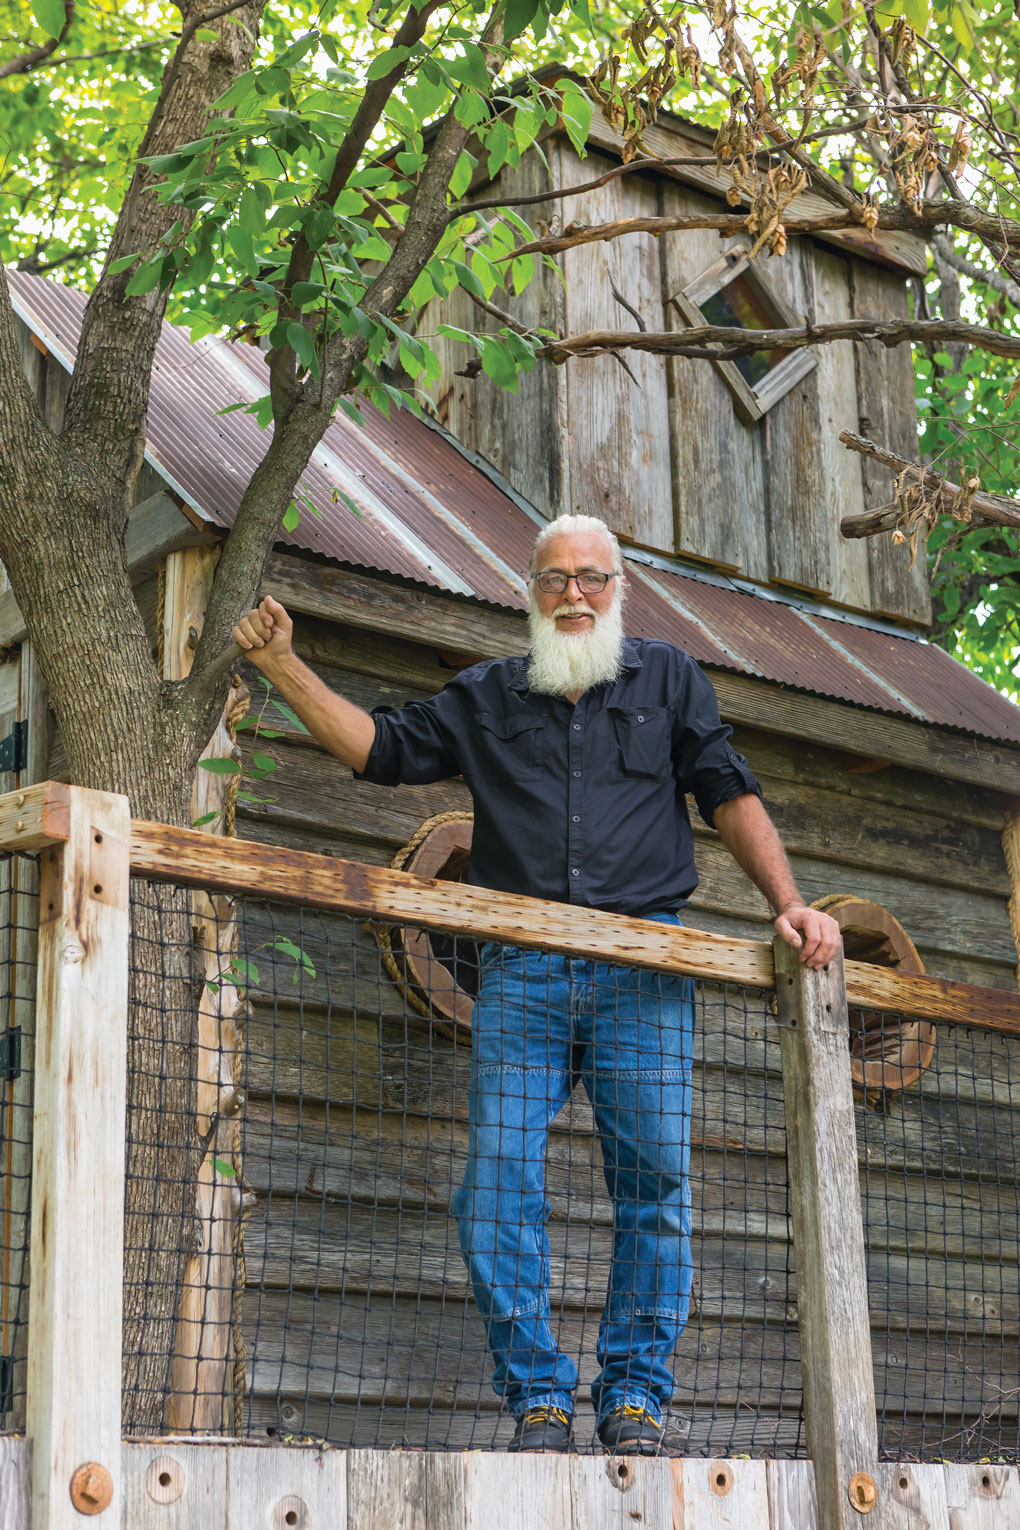 Treehouse and man who built it